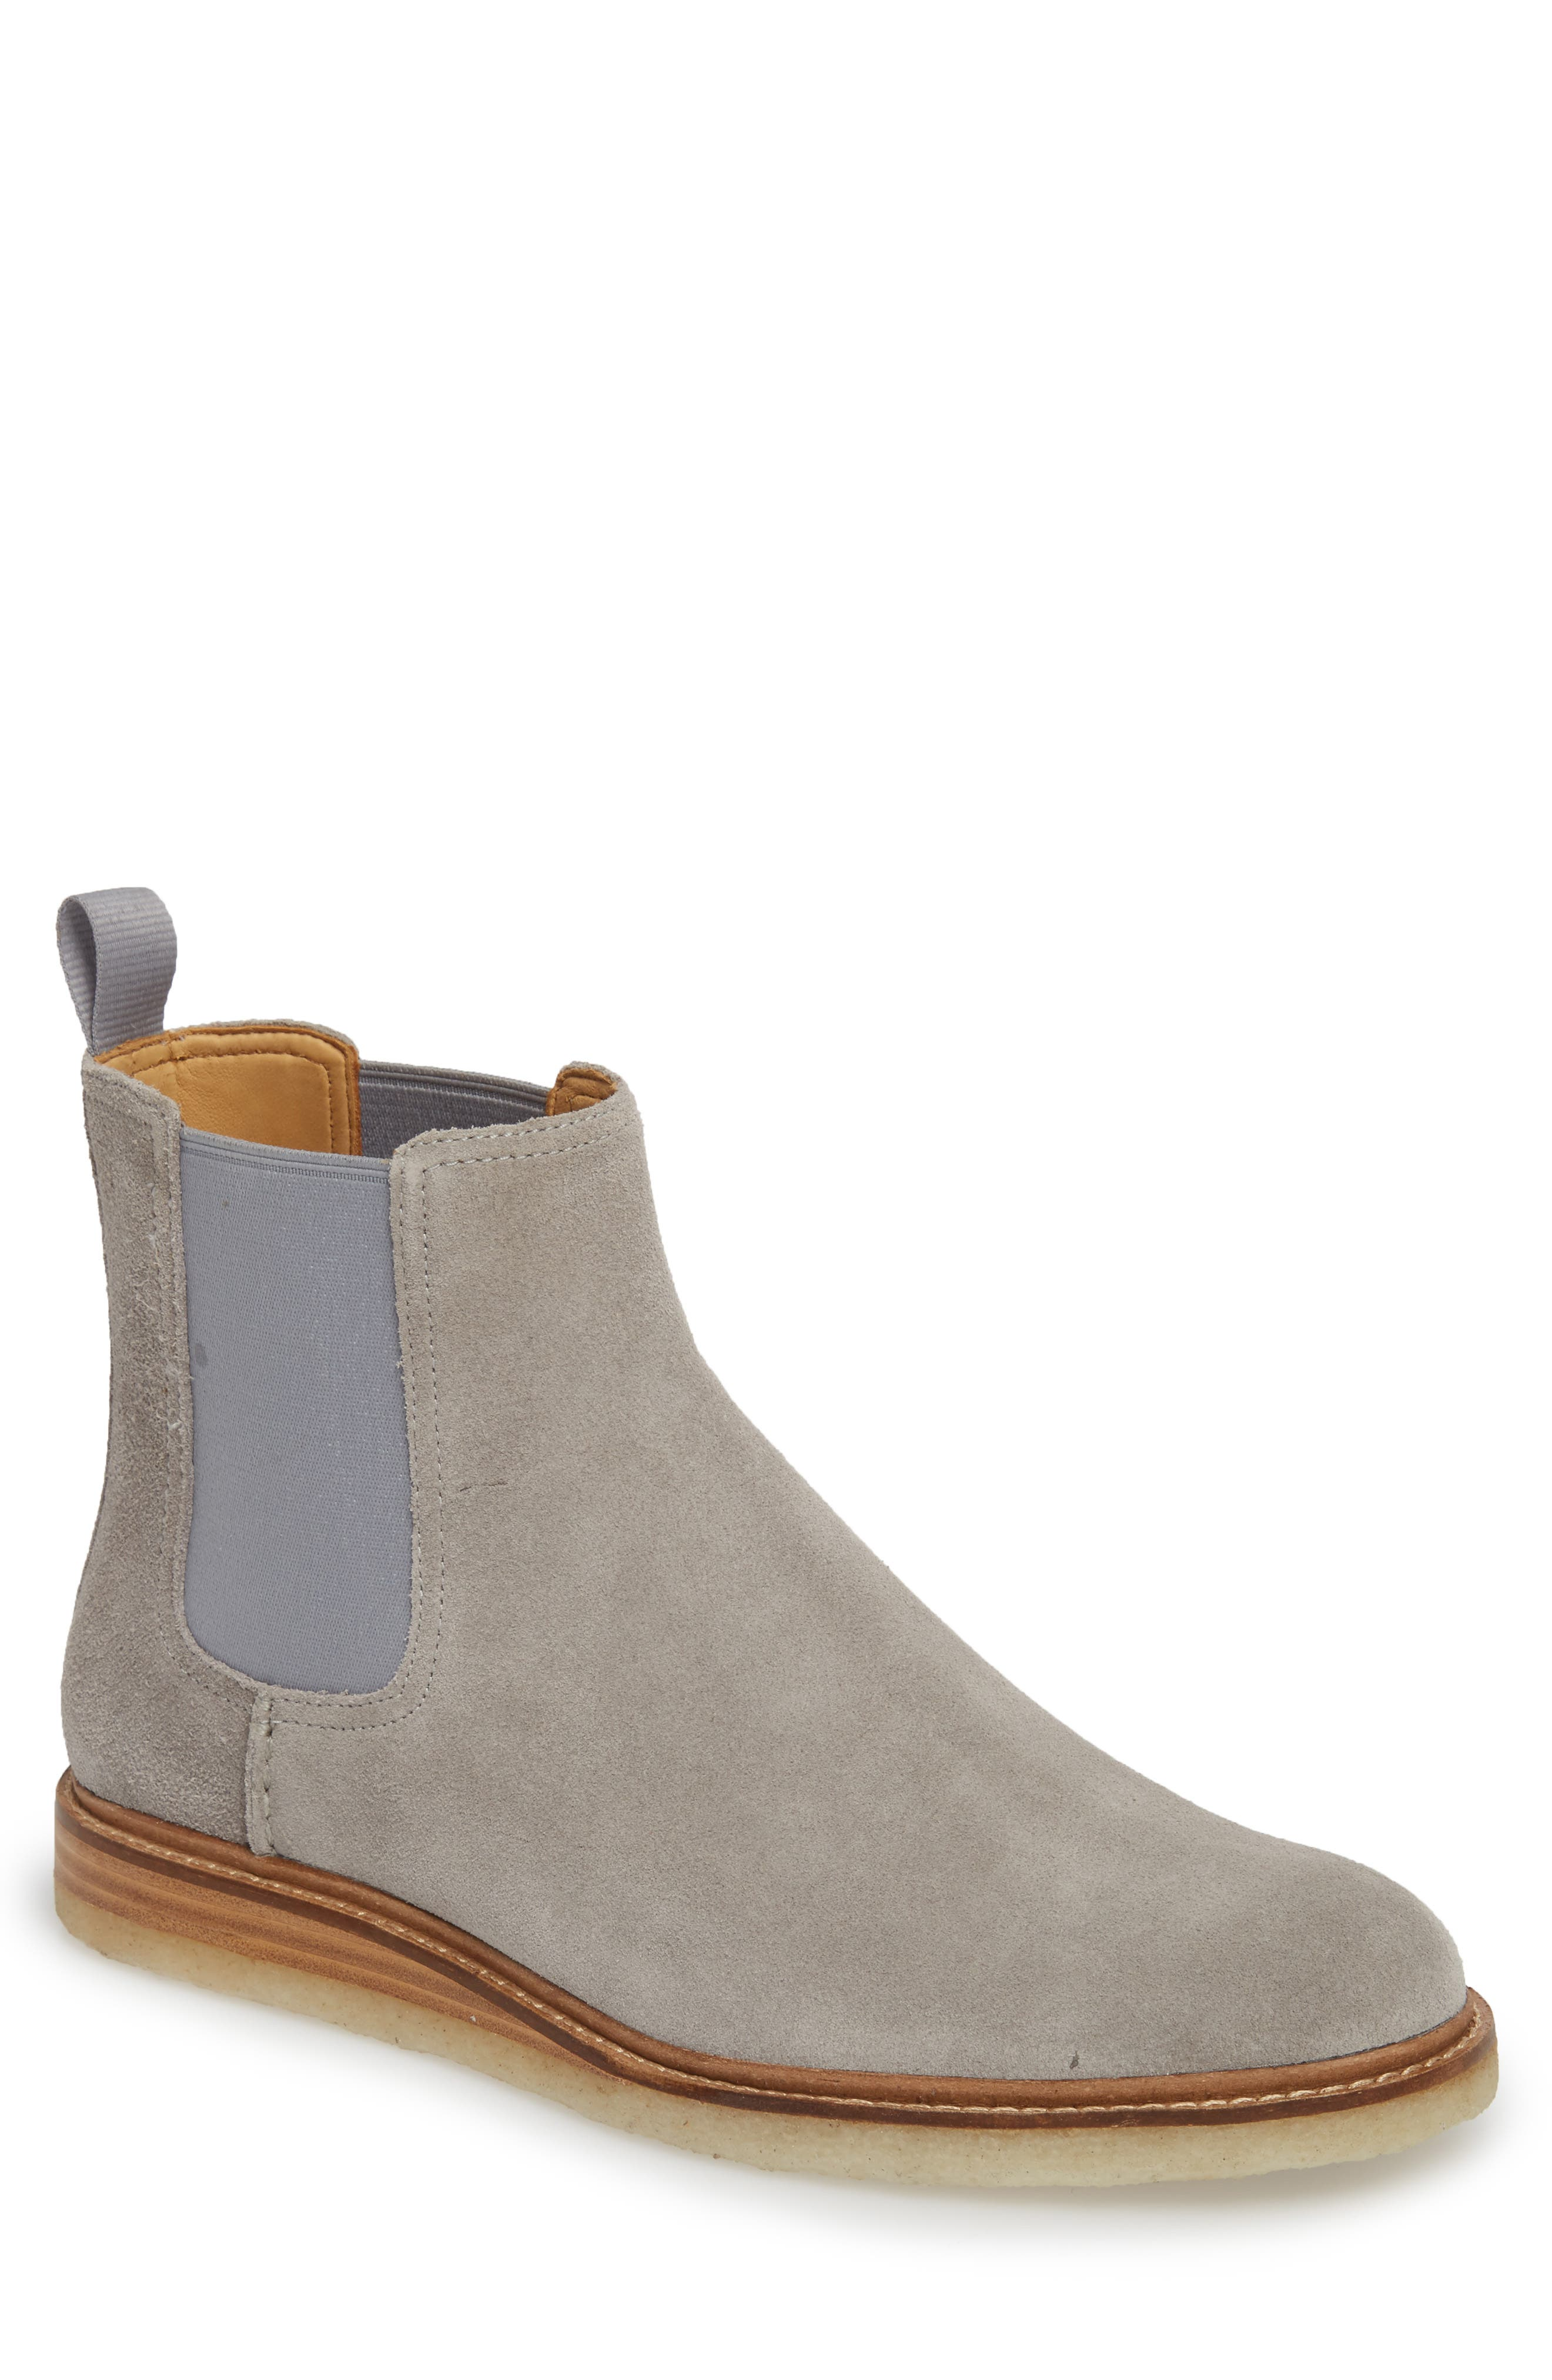 Gold Cup Crepe Chelsea Boot,                             Main thumbnail 1, color,                             Grey Leather/ Suede